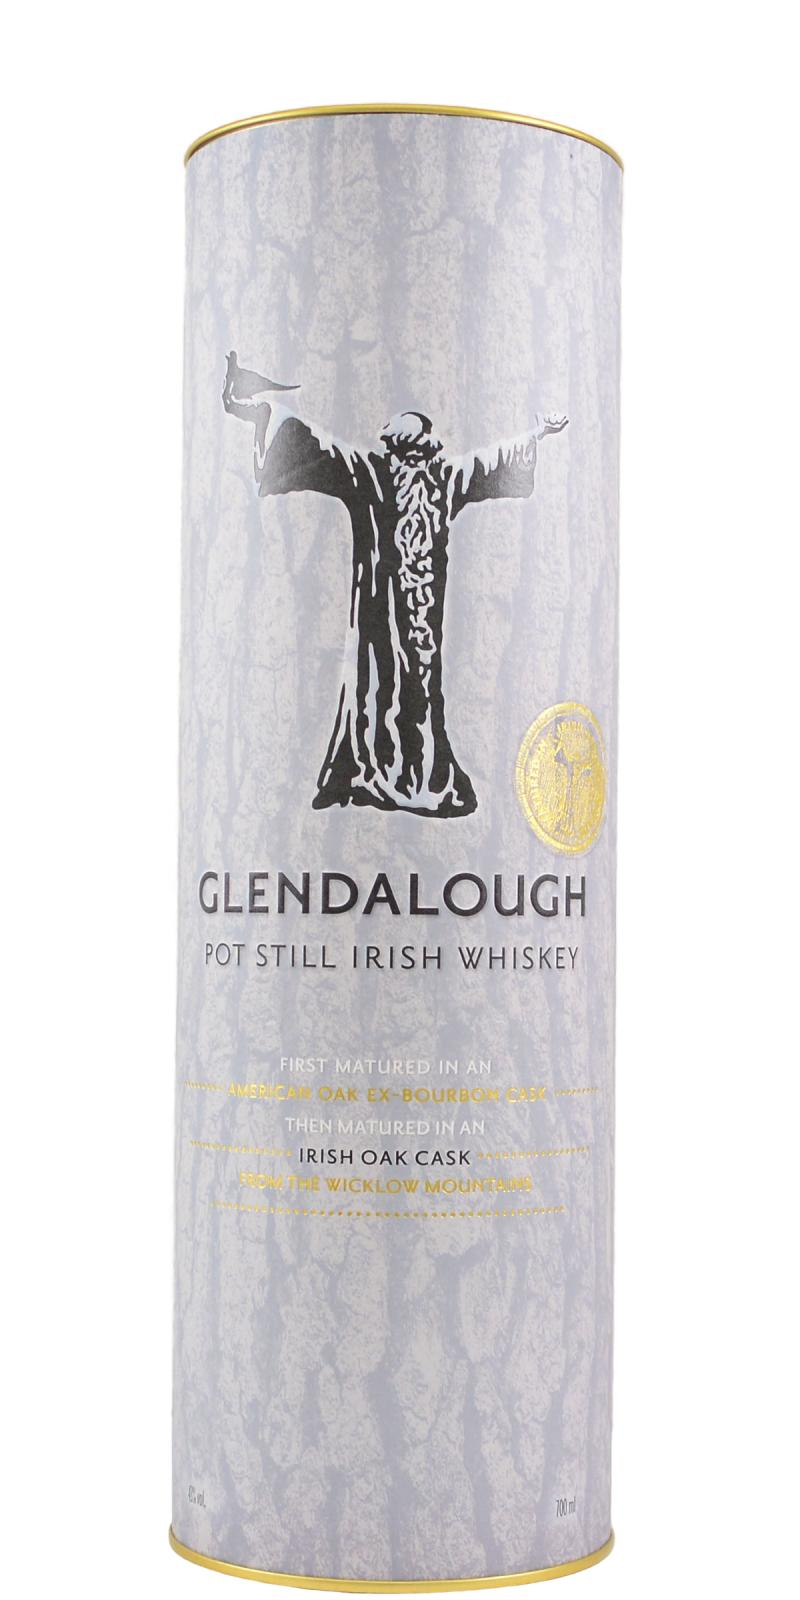 Glendalough Pot Still Irish Whiskey